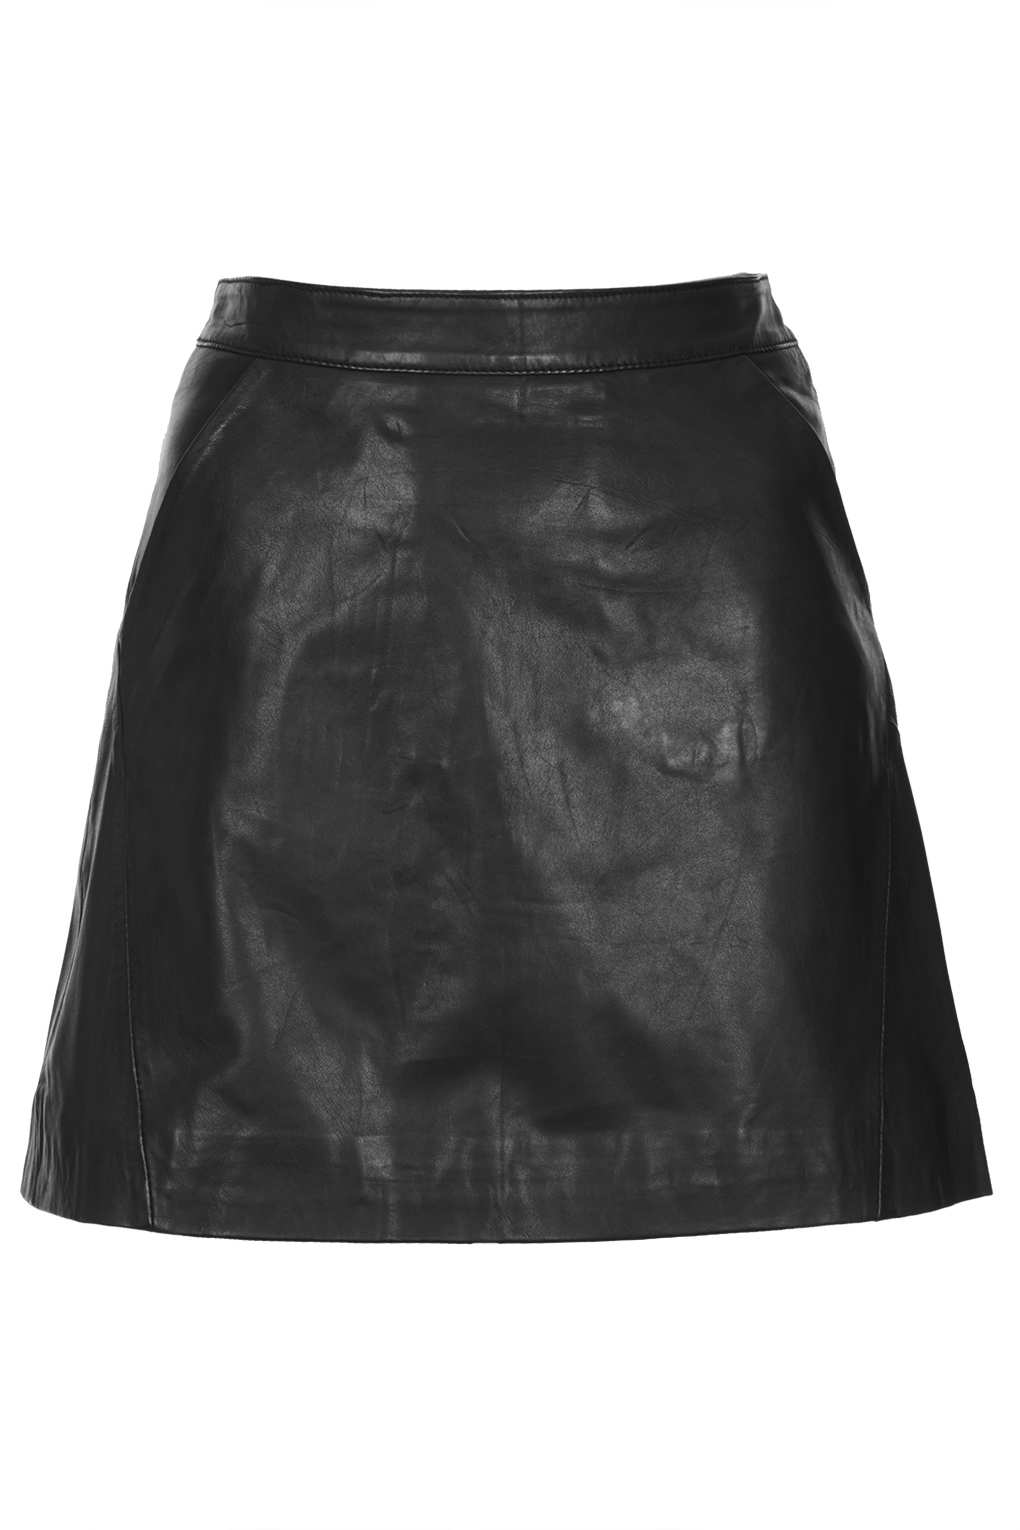 Lyst  Topshop Black Leather A Line Skirt in Black